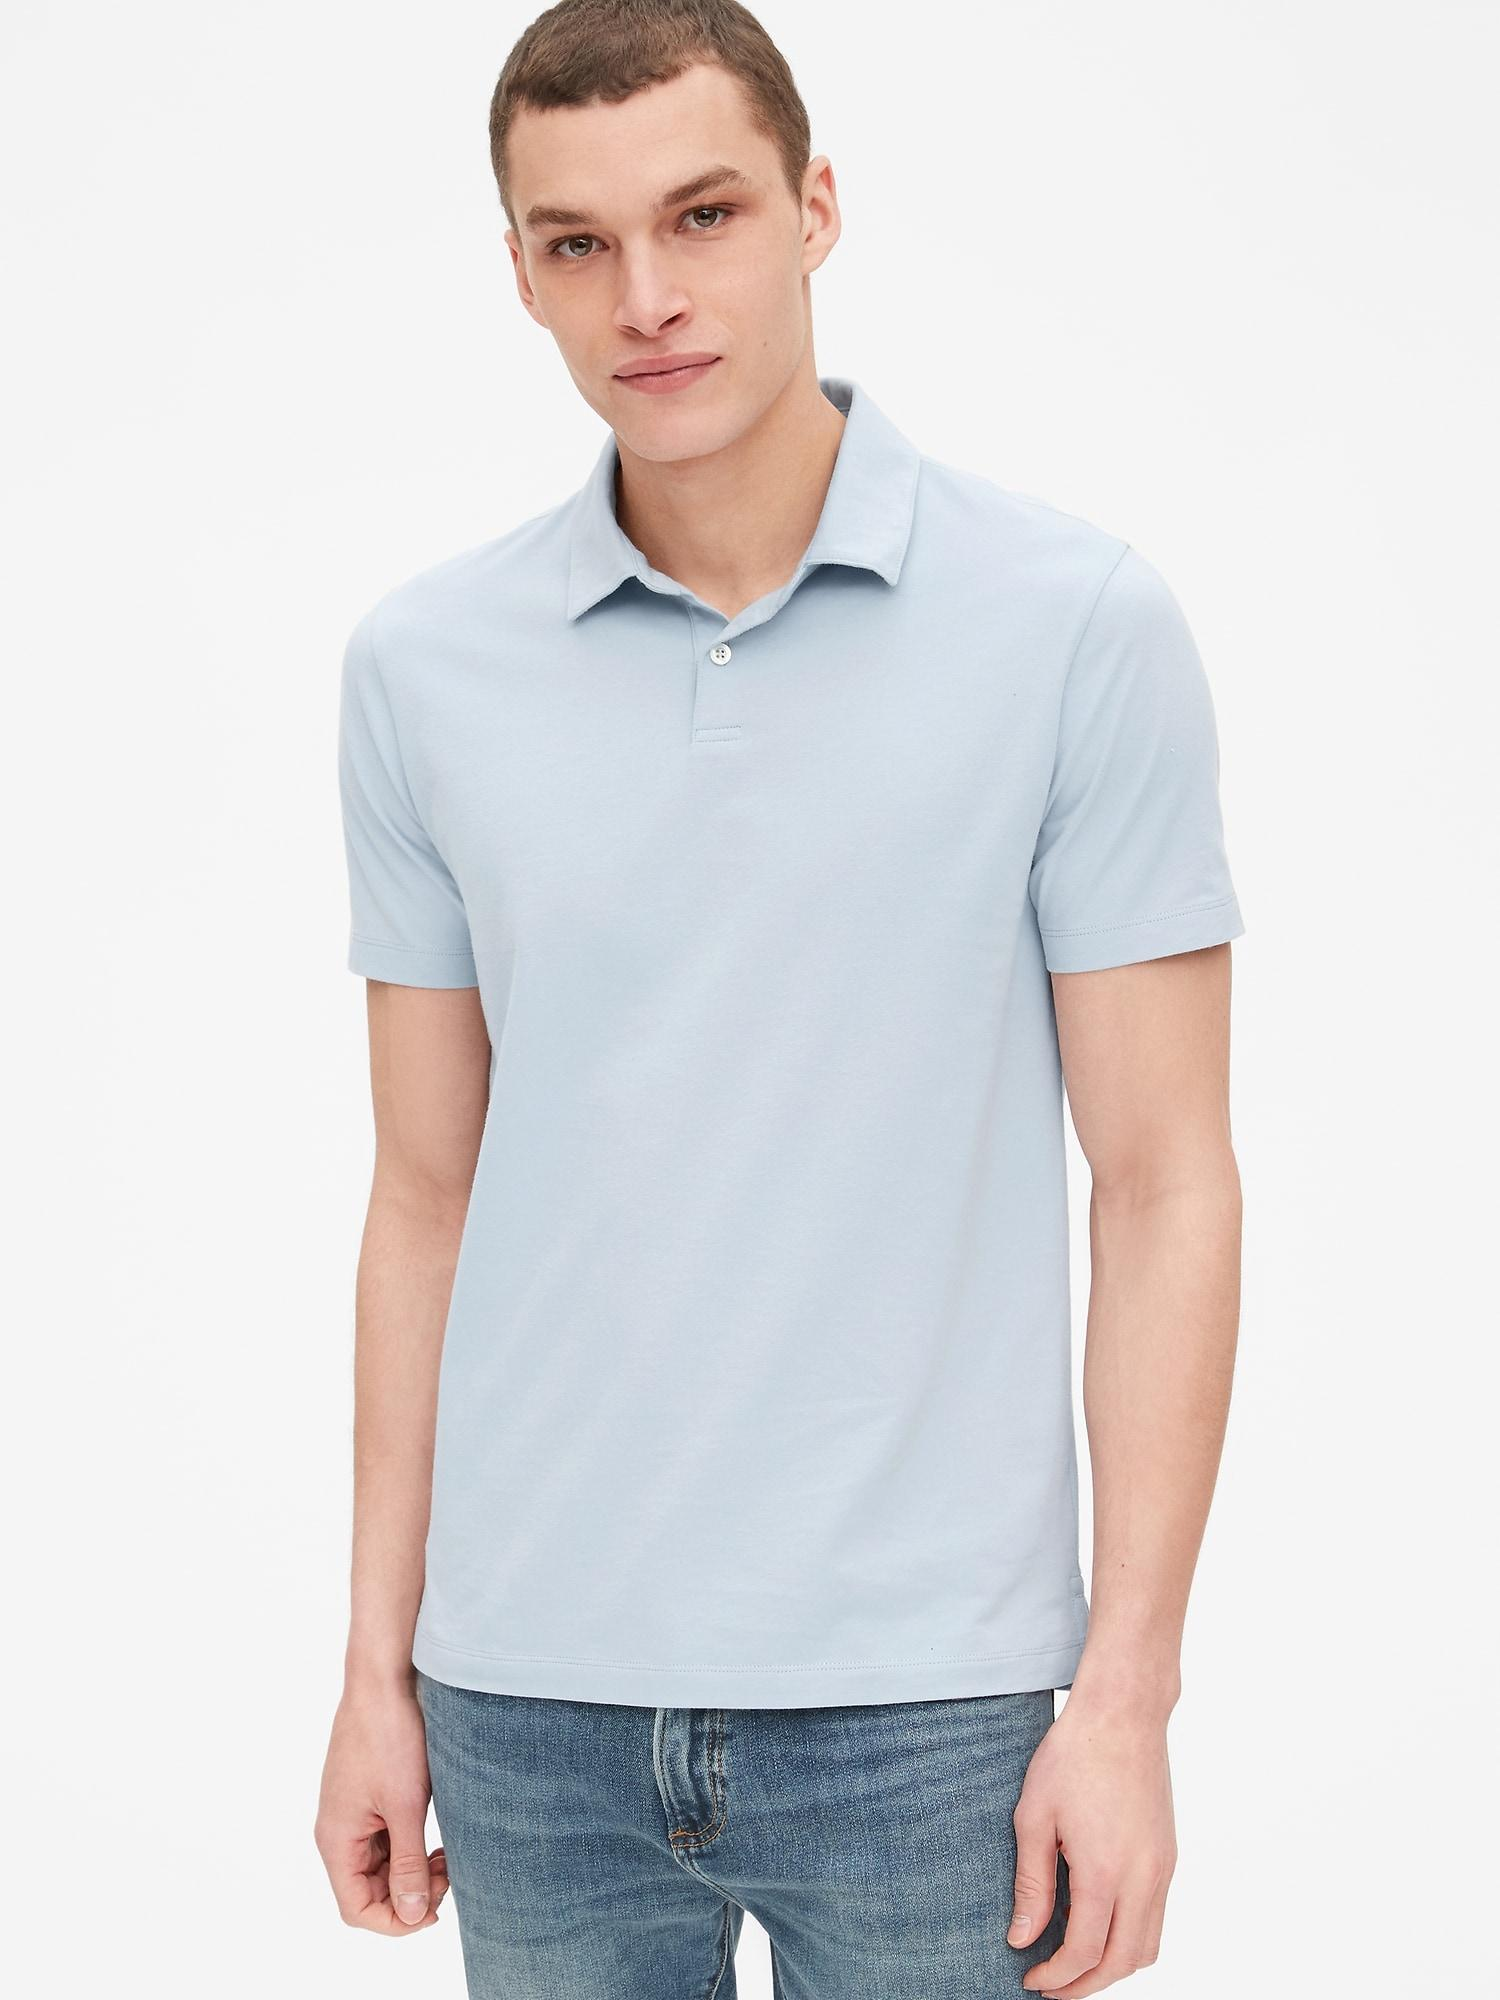 a8c4b5031 Gap Vintage Soft Polo Shirt in Blue for Men - Lyst